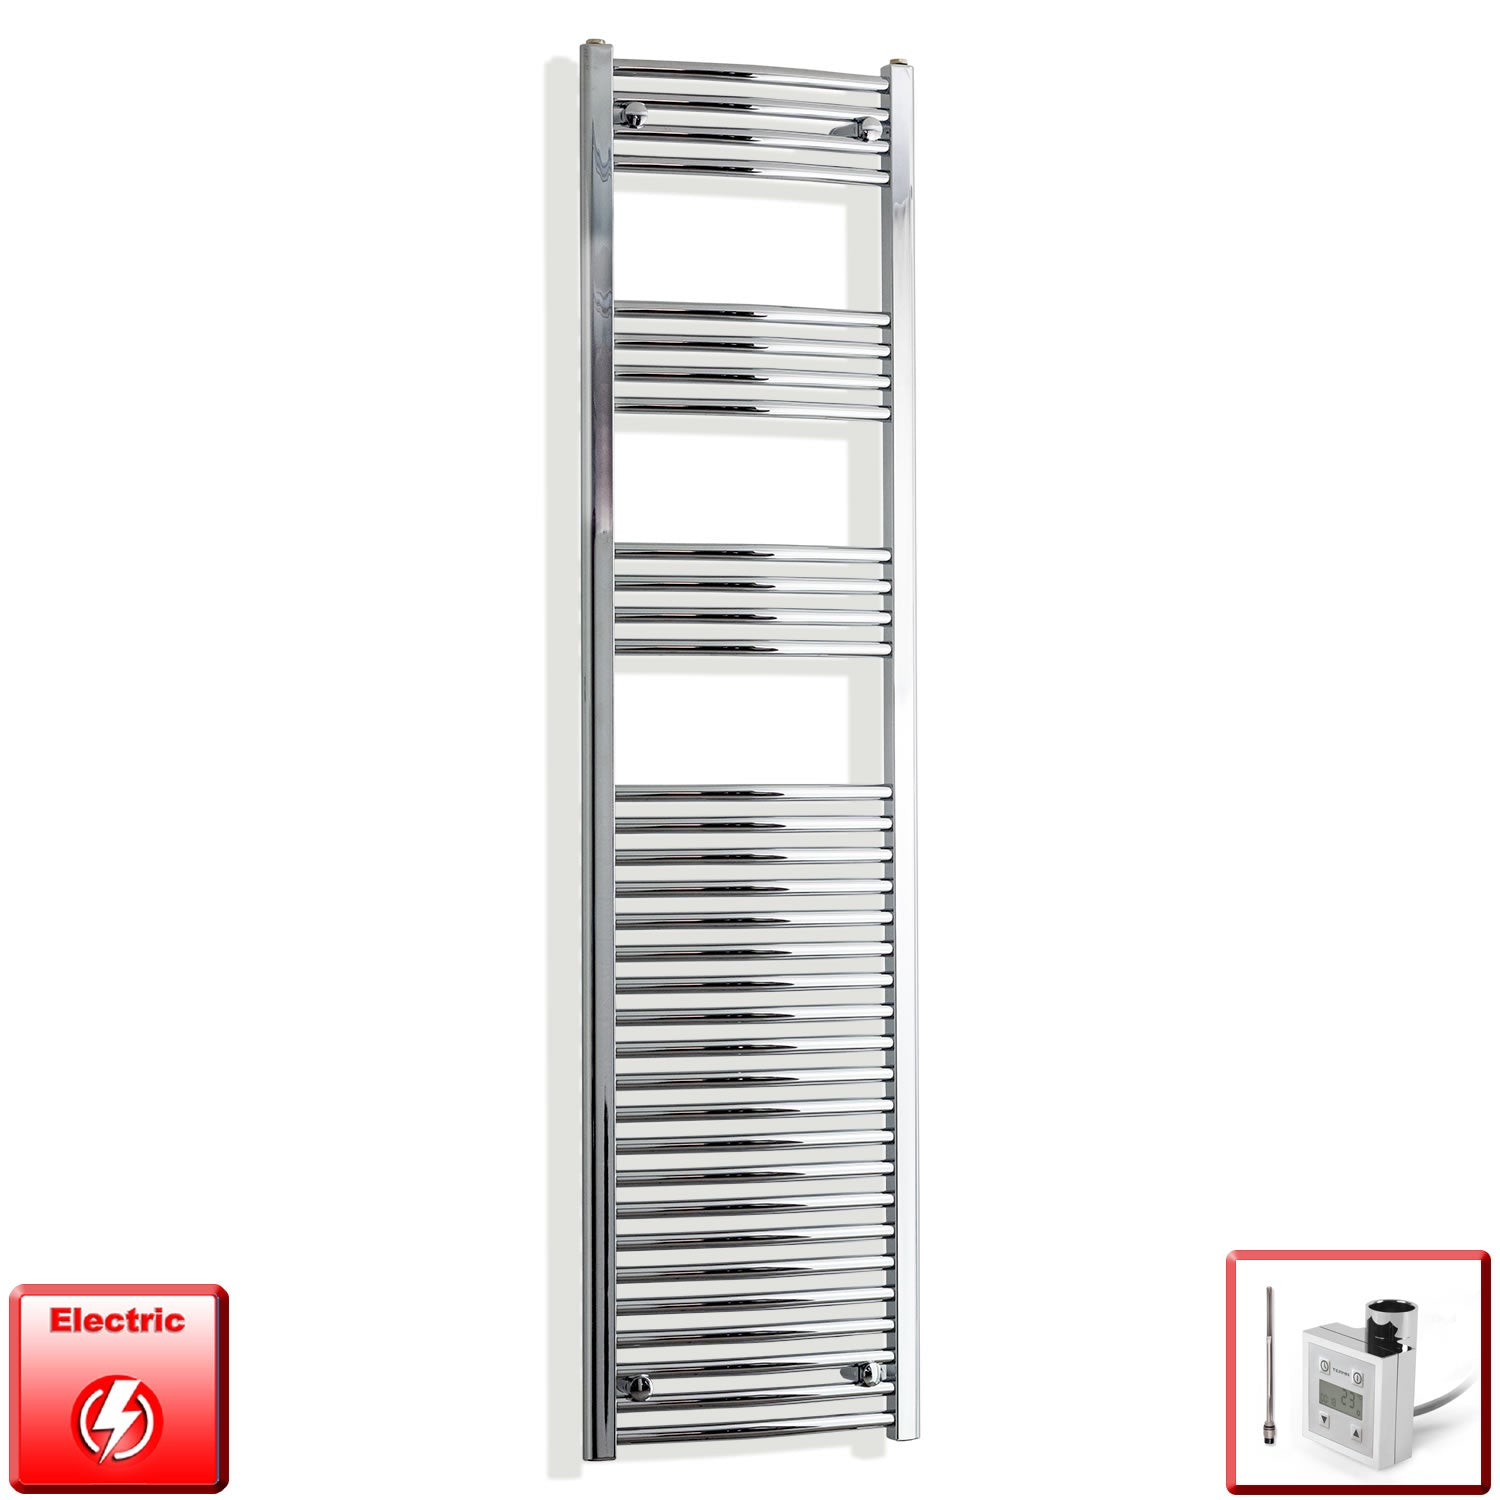 450mm Wide 1800mm High Curved Chrome Pre-Filled Electric Heated Towel Rail Radiator HTR,KTX-3 Thermostatic Element